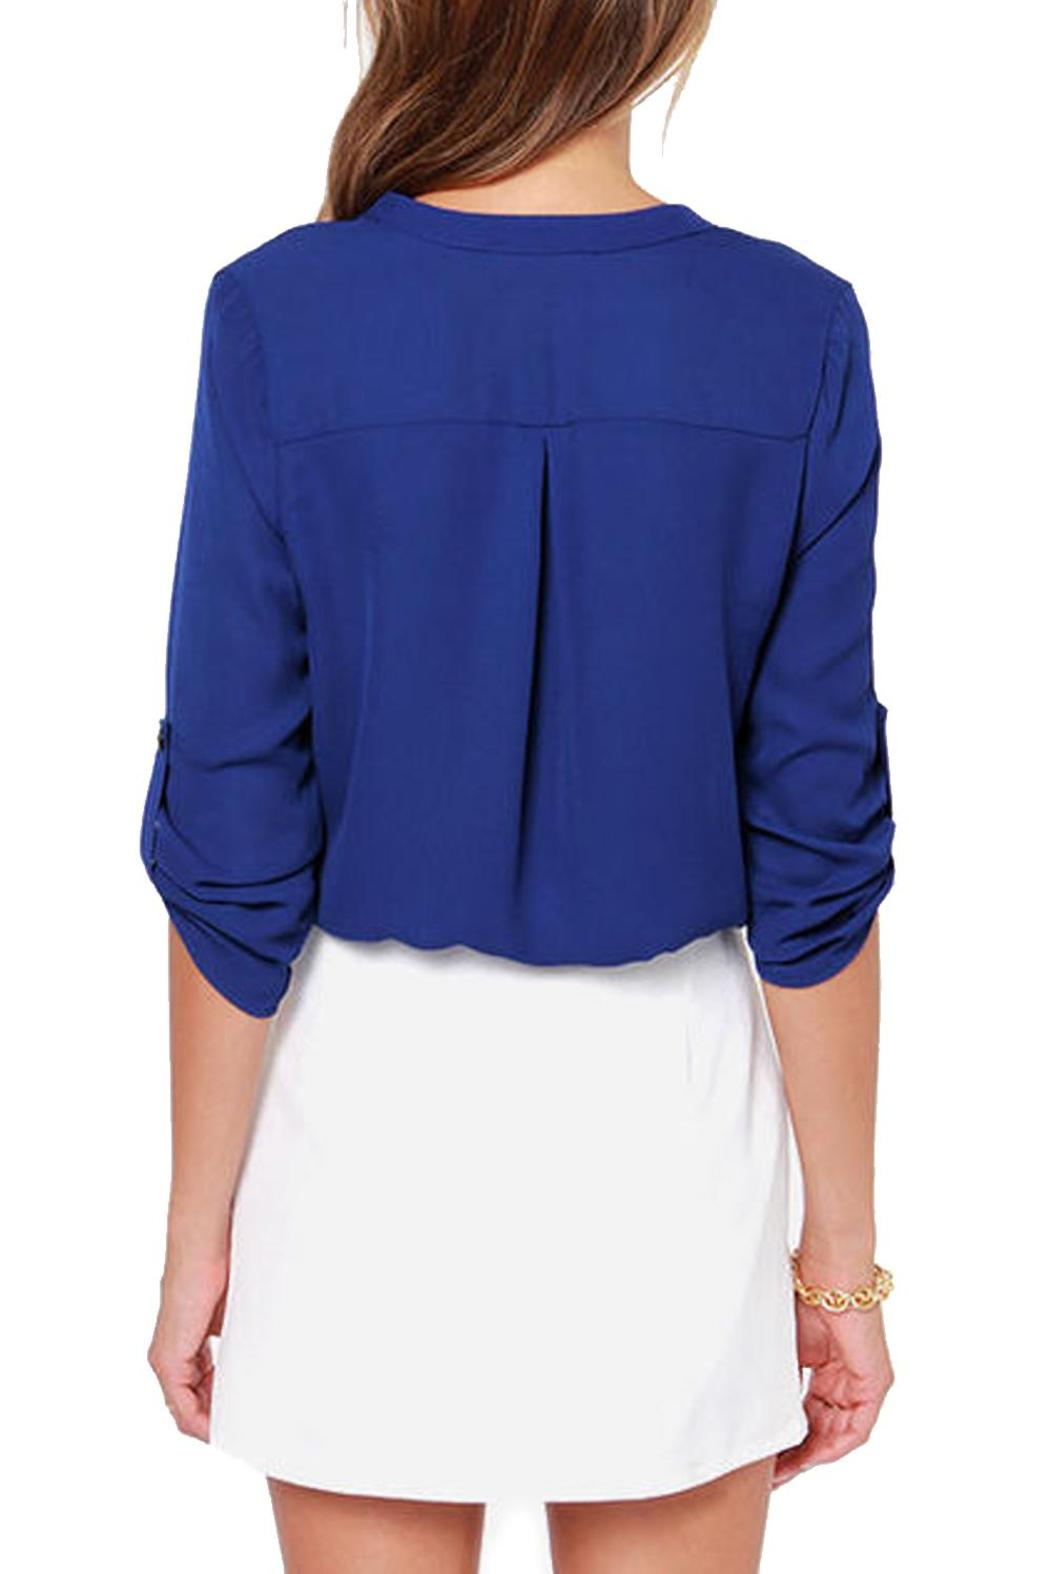 Lush Cobalt Blue Blouse From Seattle By Simply Chic